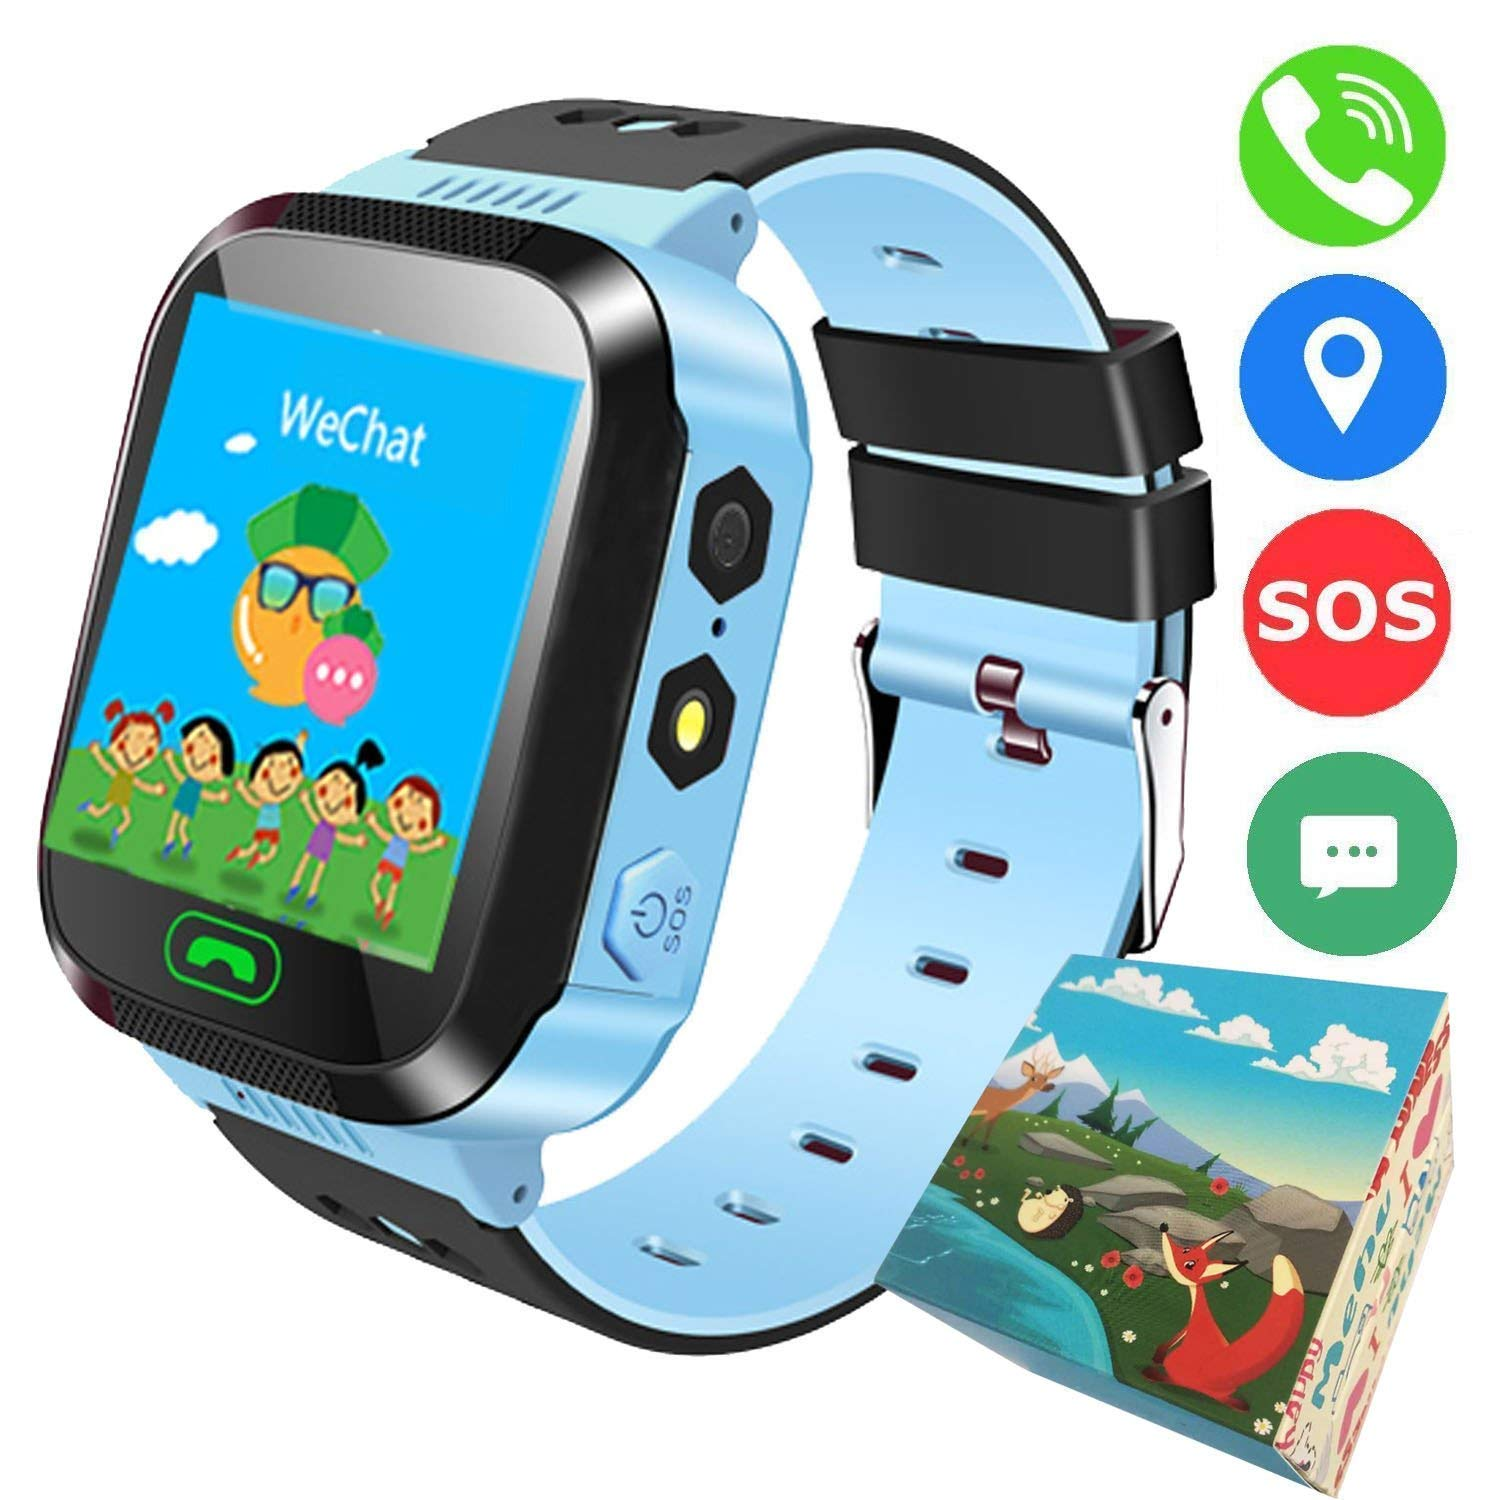 Smart Phone Watch,Kids Smart Watch with GPS Tracker for Kids Boys Girls, Children Wristwatch with SIM Card SOS Anti-Lost Alarm Monitor Camera Flashlight Sports Outdoor for iOS Android Children Gifts